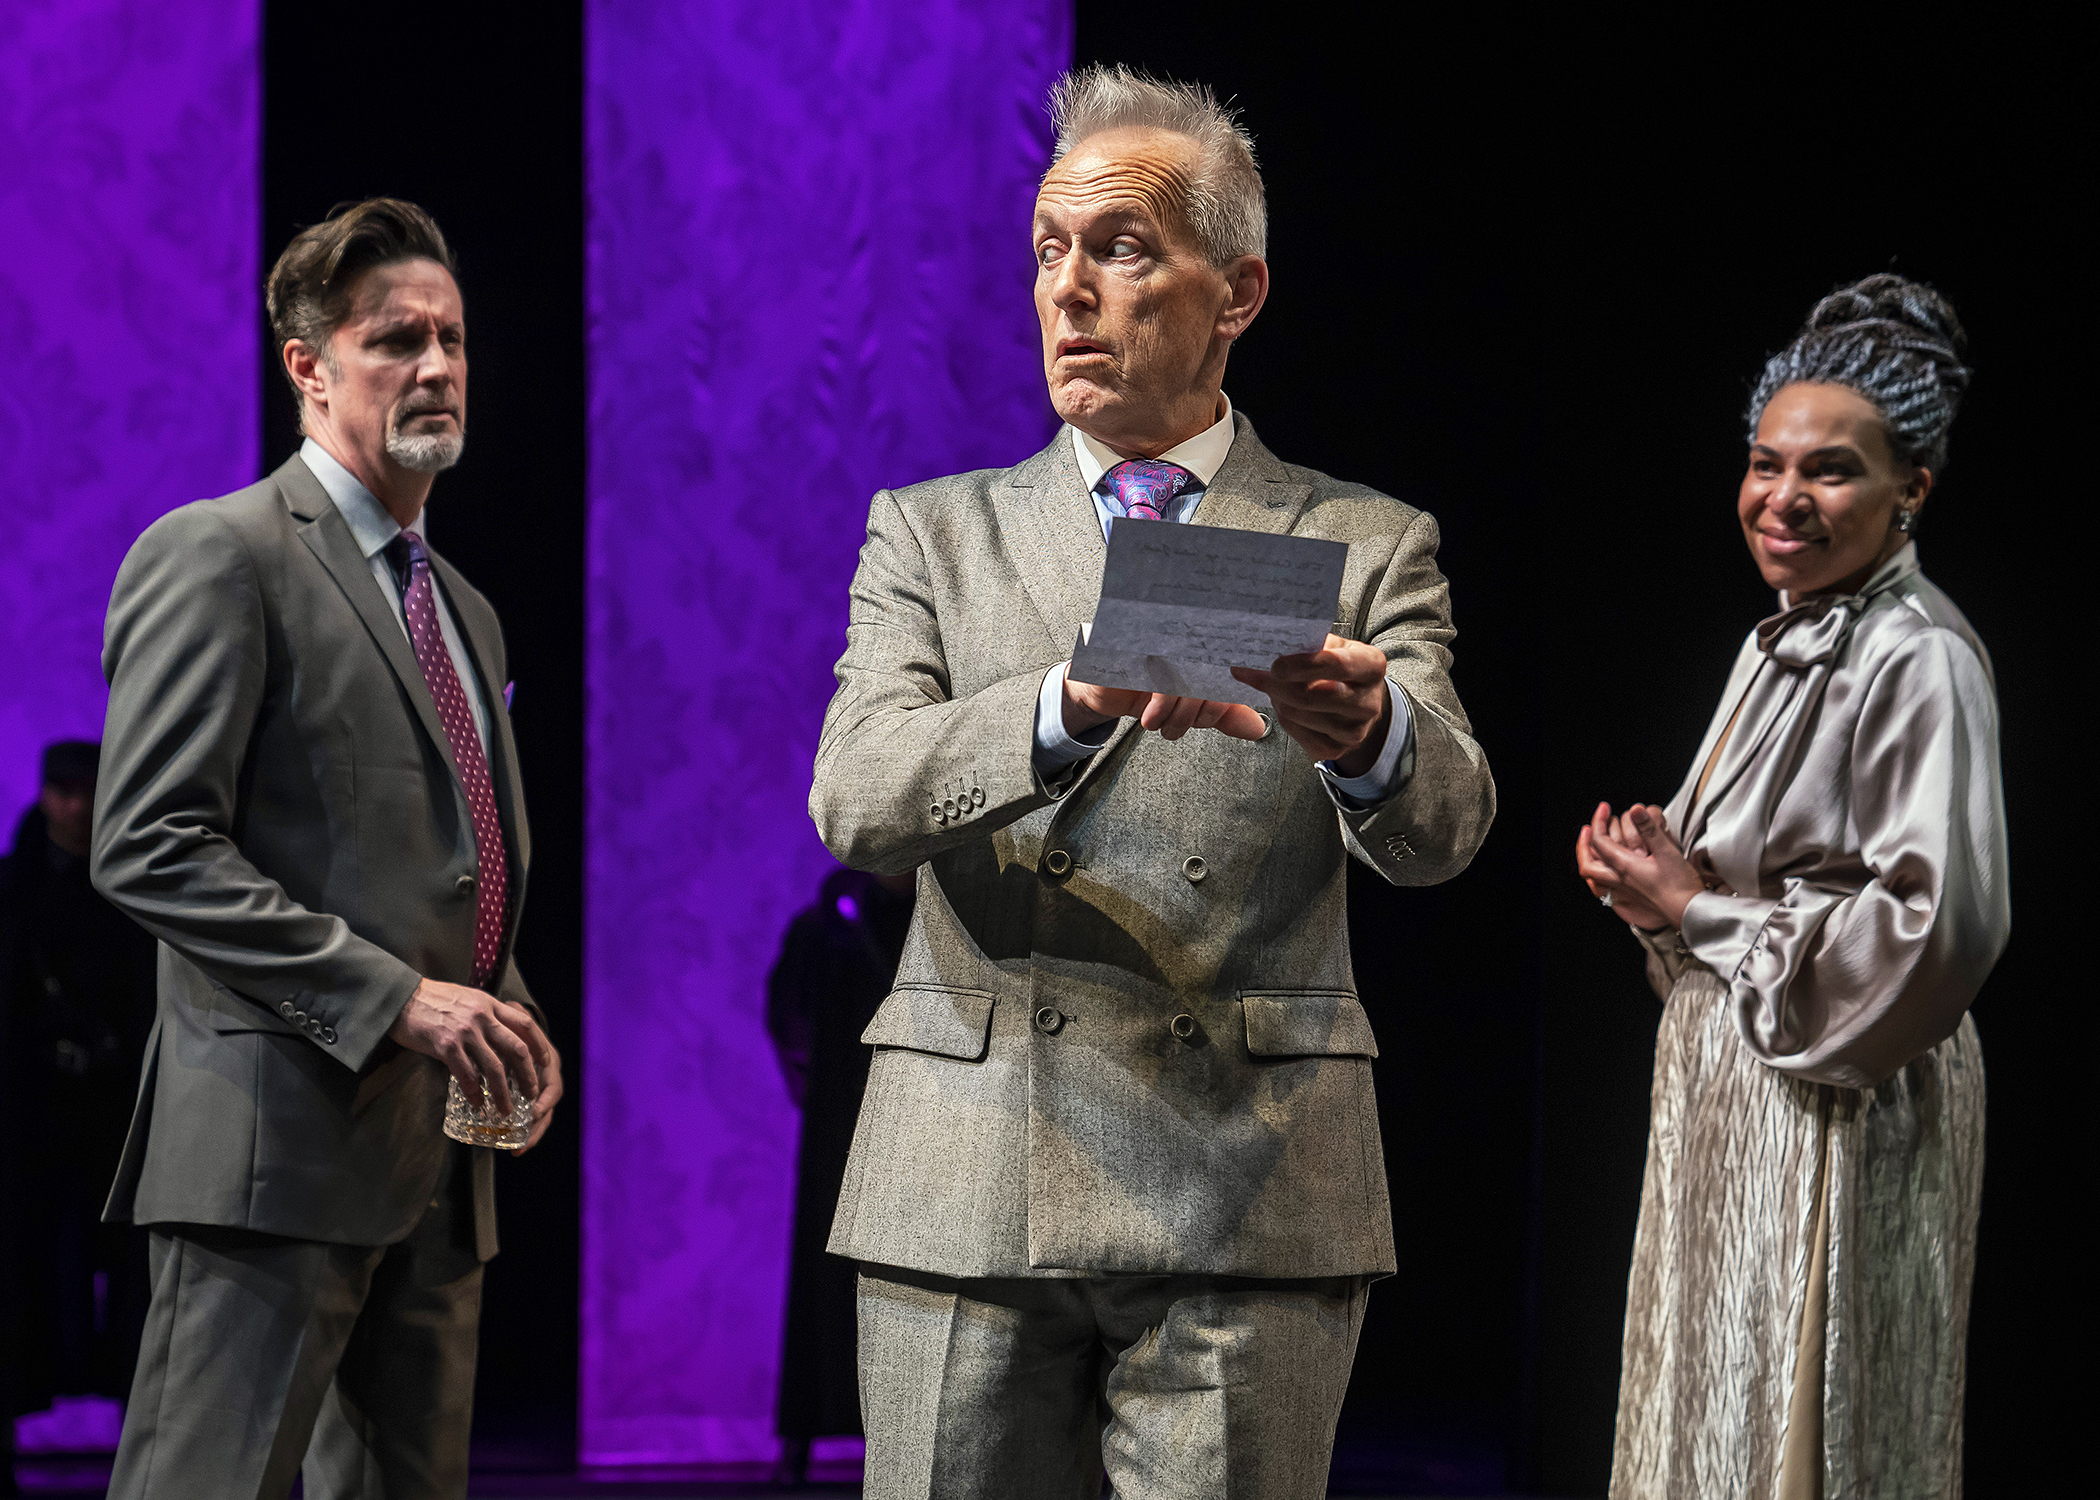 Polonius (Larry Yando, at center) reveals to King Claudius (Tim Decker) and Queen Gertrude (Karen Aldridge) the contents of Hamlet's letter to Ophelia in Chicago Shakespeare Theater's production of  Hamlet , directed by Barbara Gaines, in the Courtyard Theater, April 17–June 9, 2019. Photo by Liz Lauren.